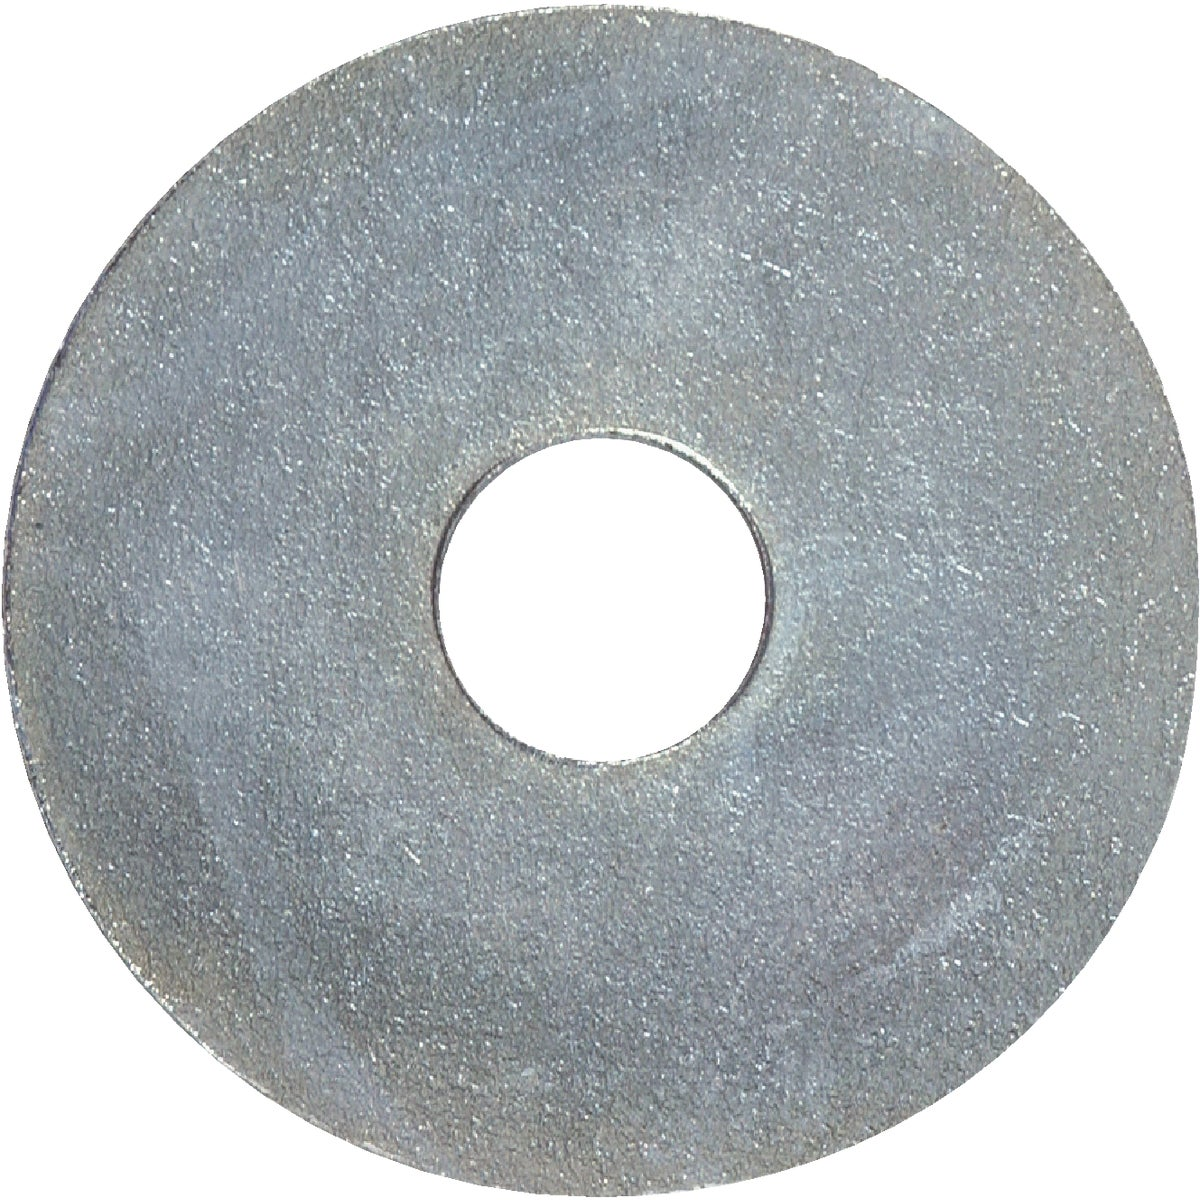 3/8X2 FENDER WASHER - 290039 by Hillman Fastener